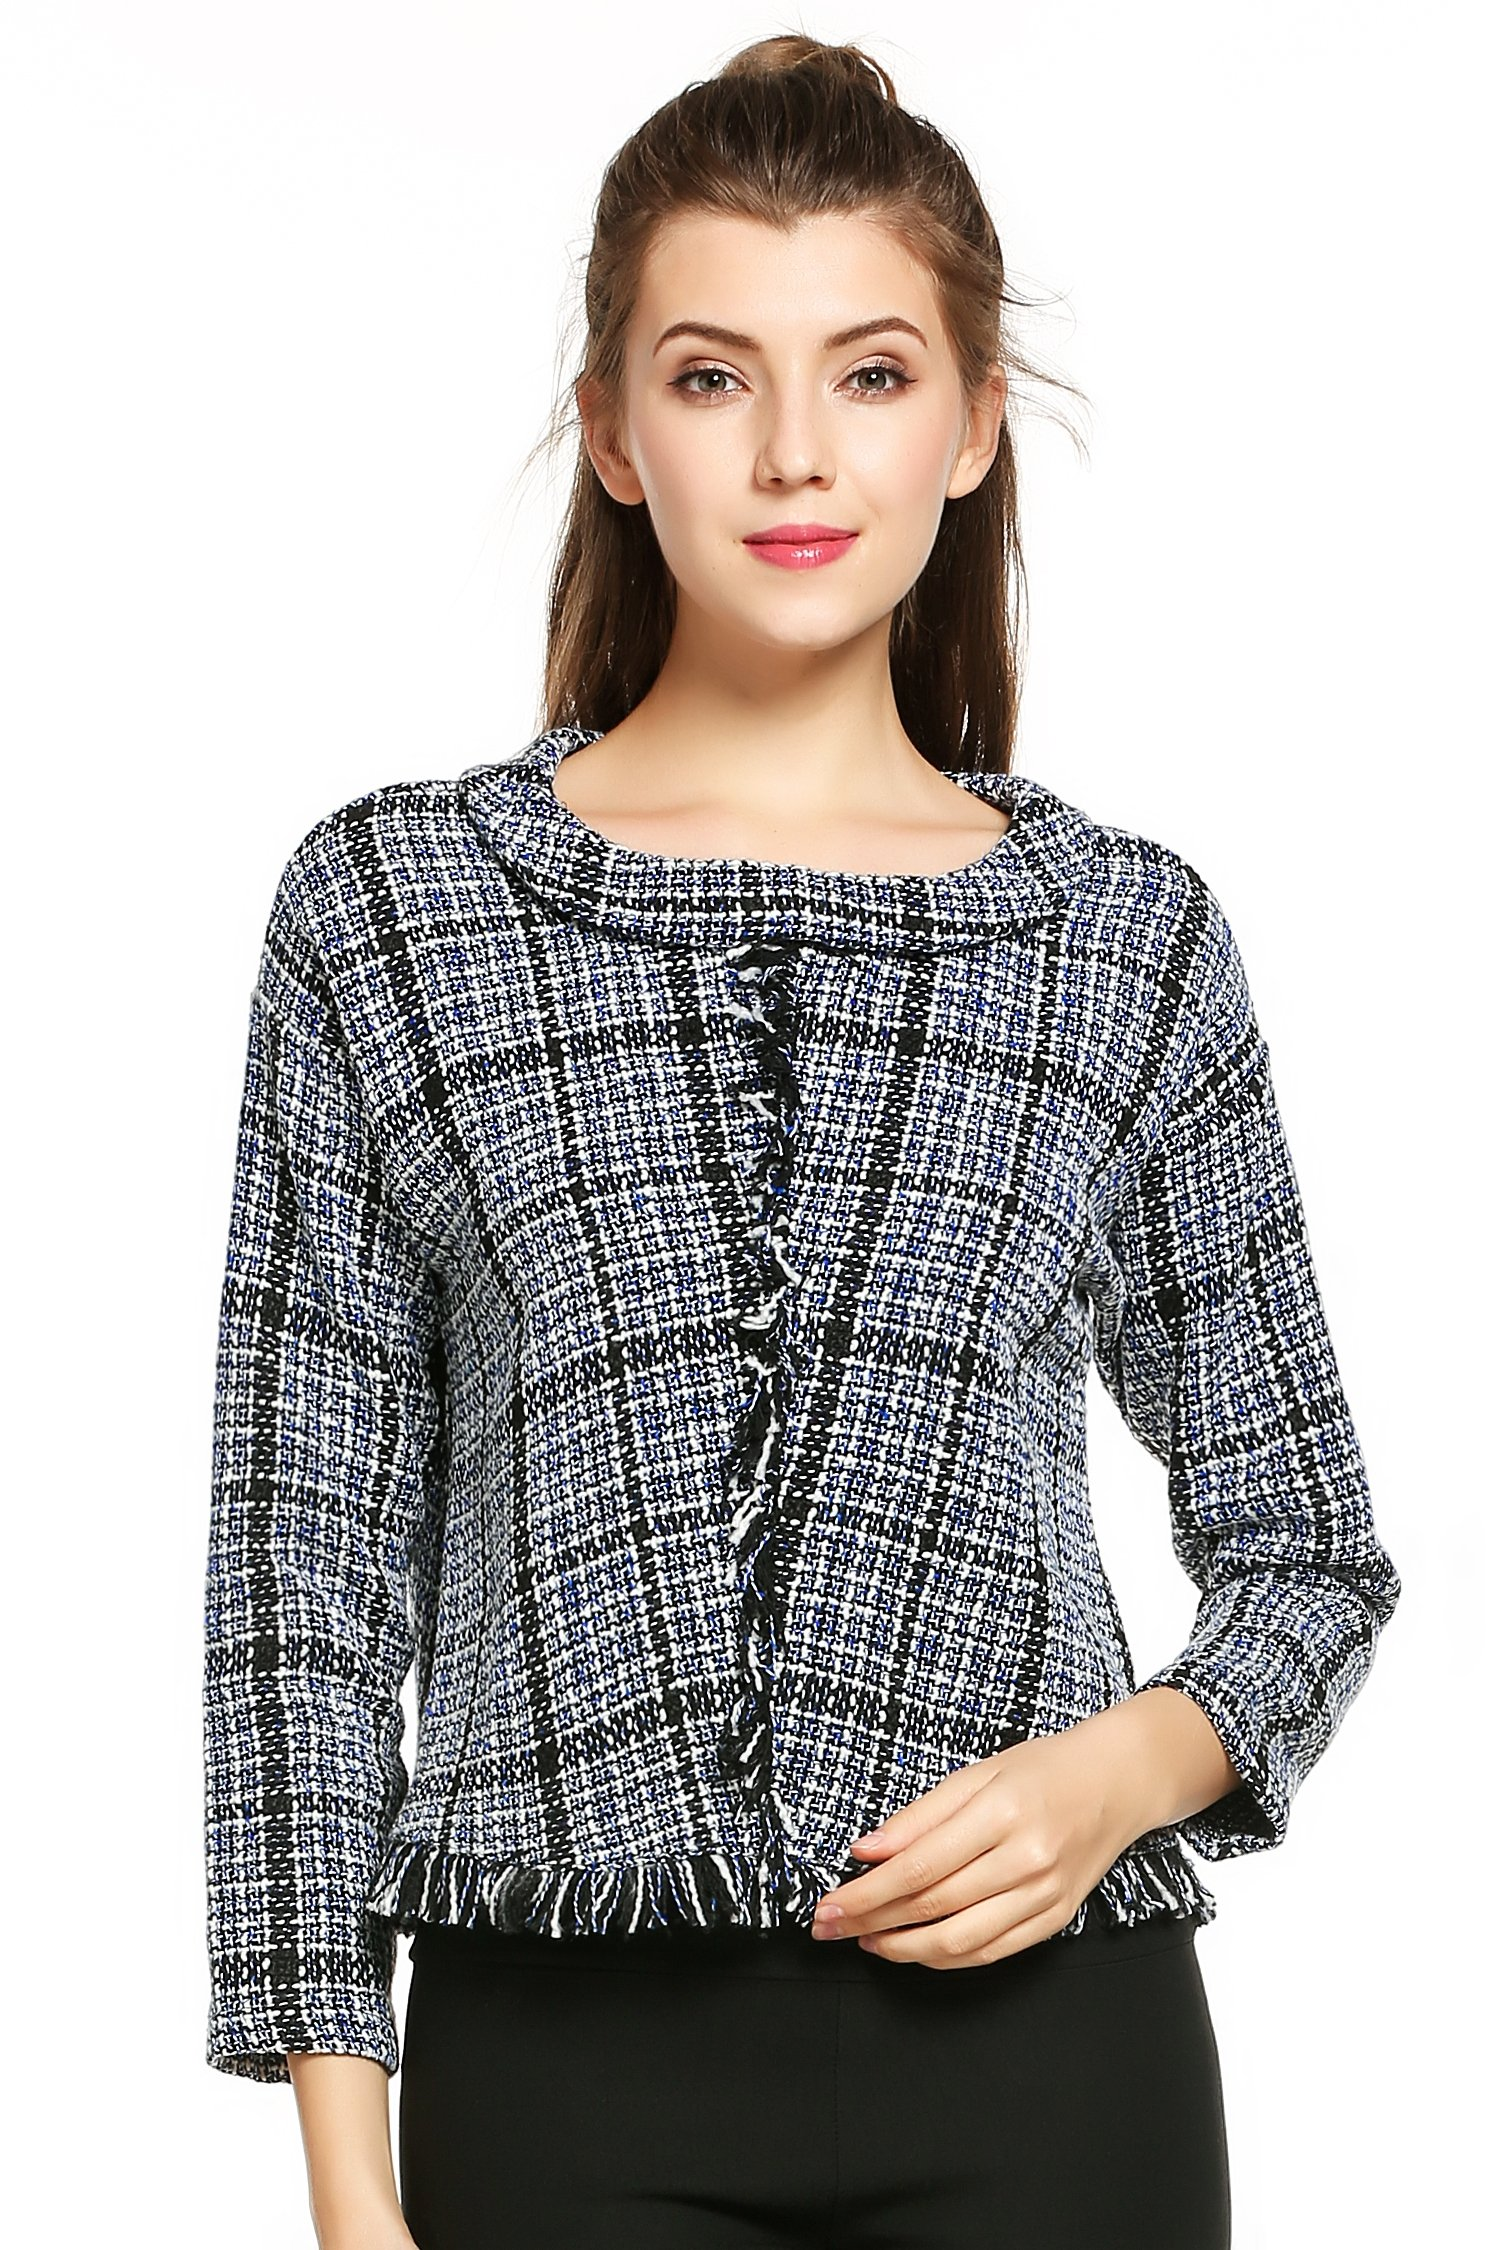 HOTOUCH Women's Roll Neck Drop-Shoulder Plaid Tassel Tweed Top Blue S